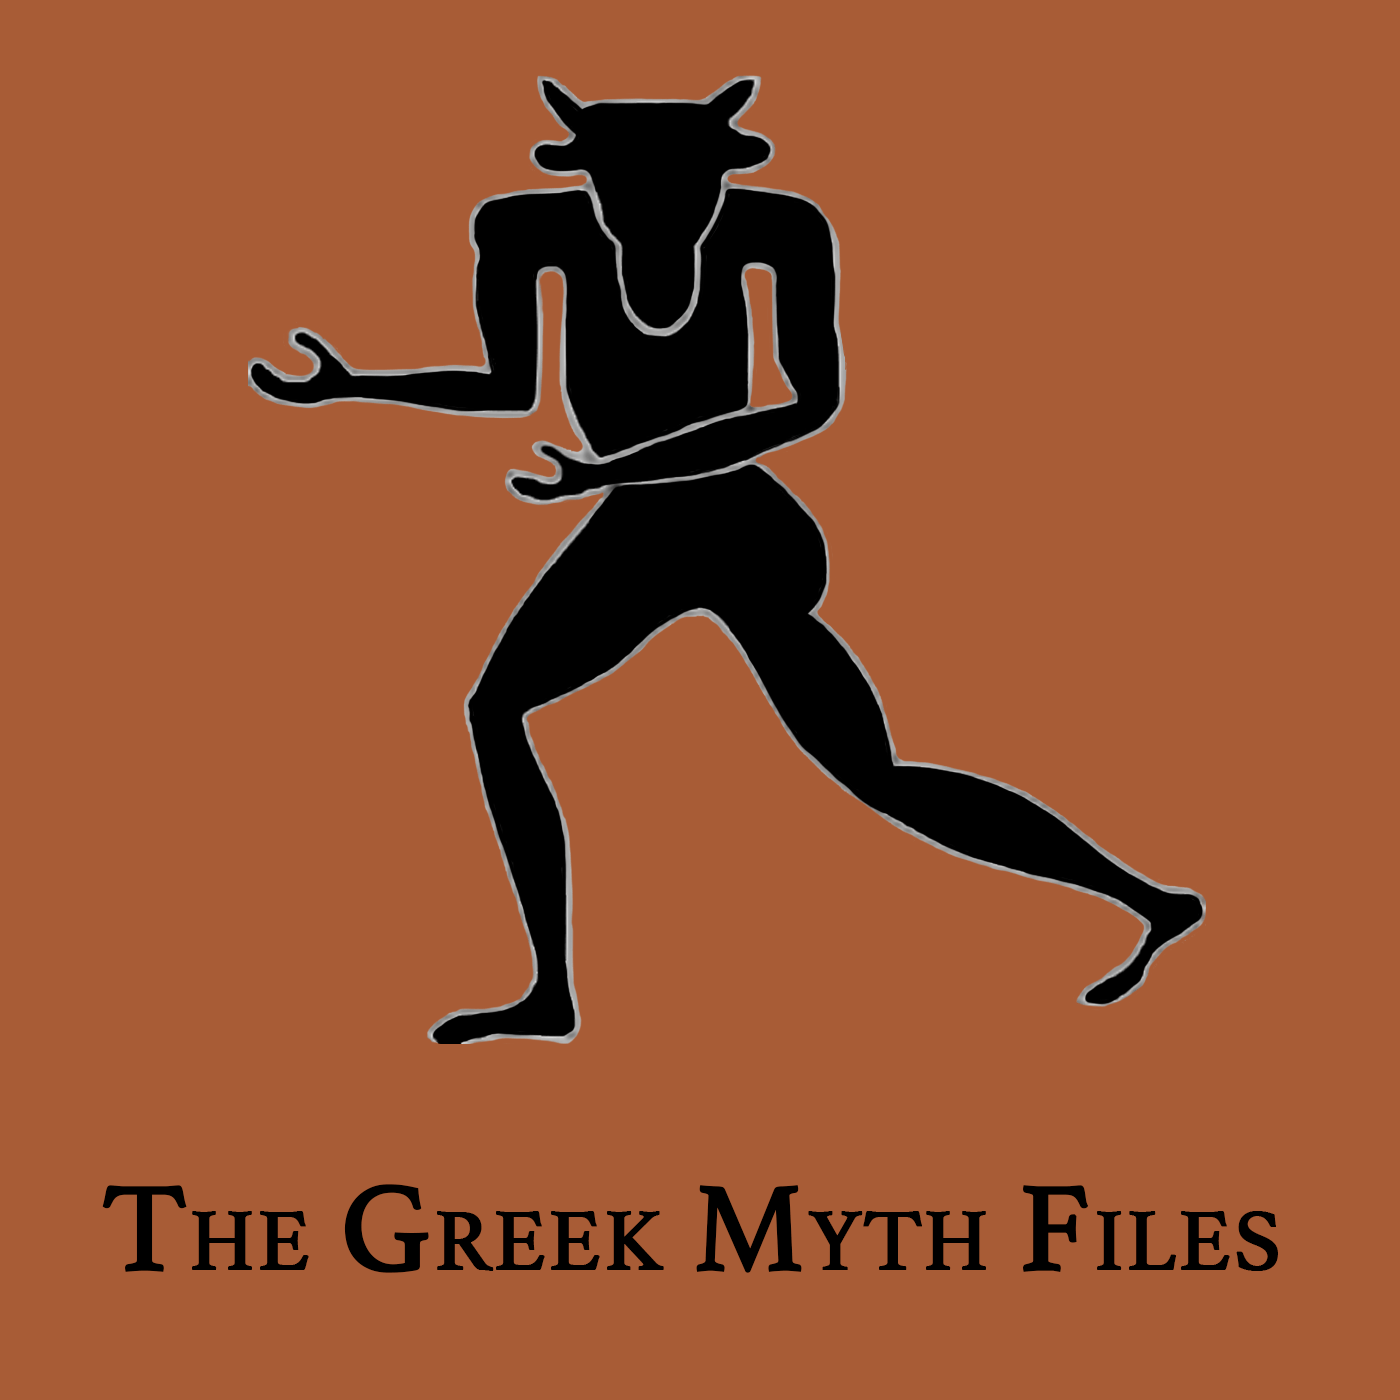 The Greek Myth Files